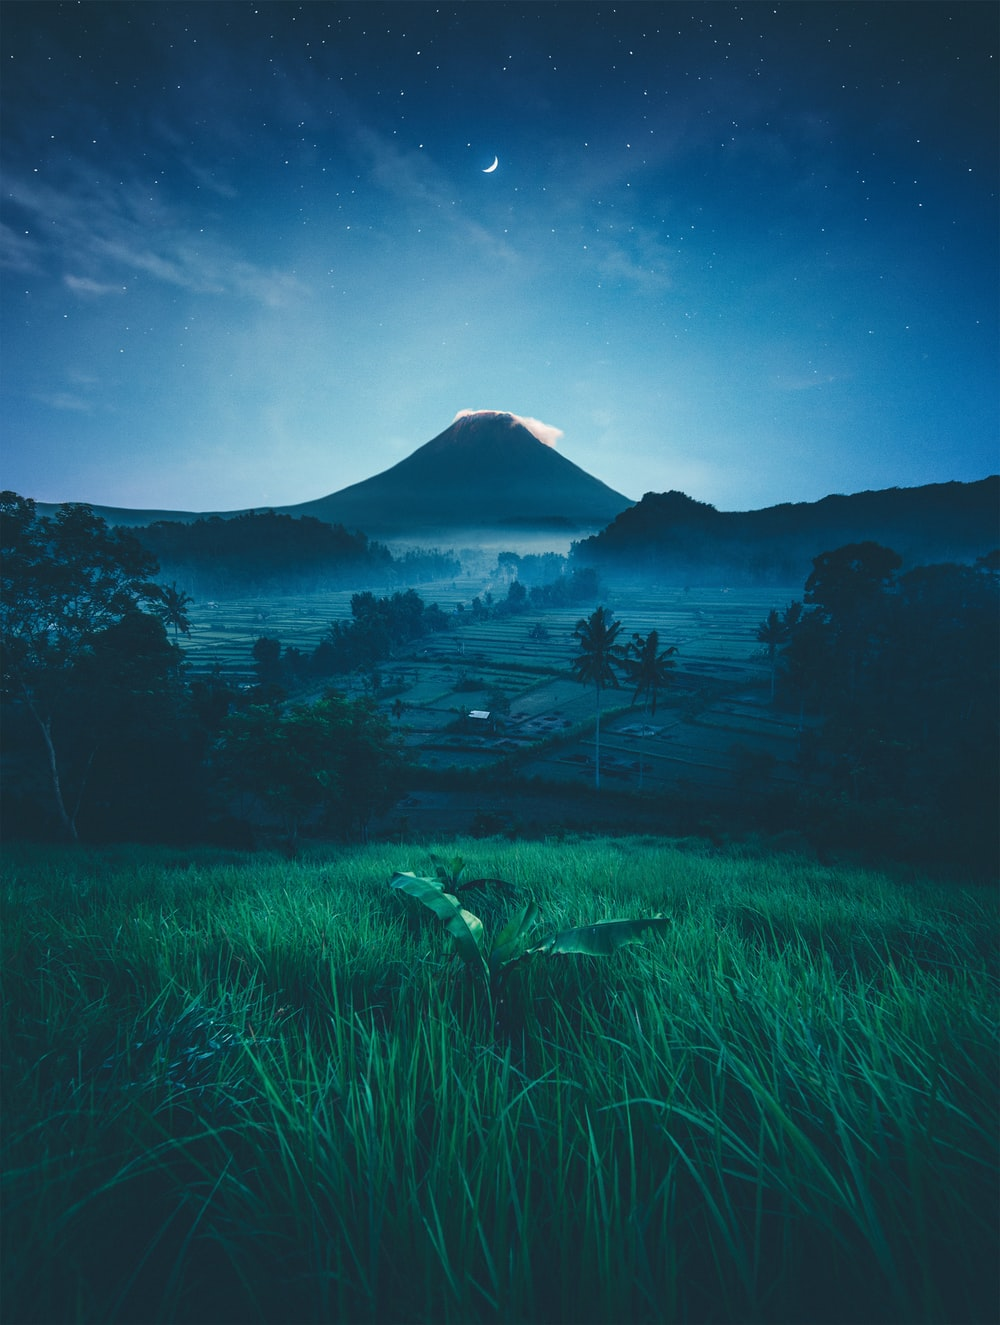 mountain near green trees at night